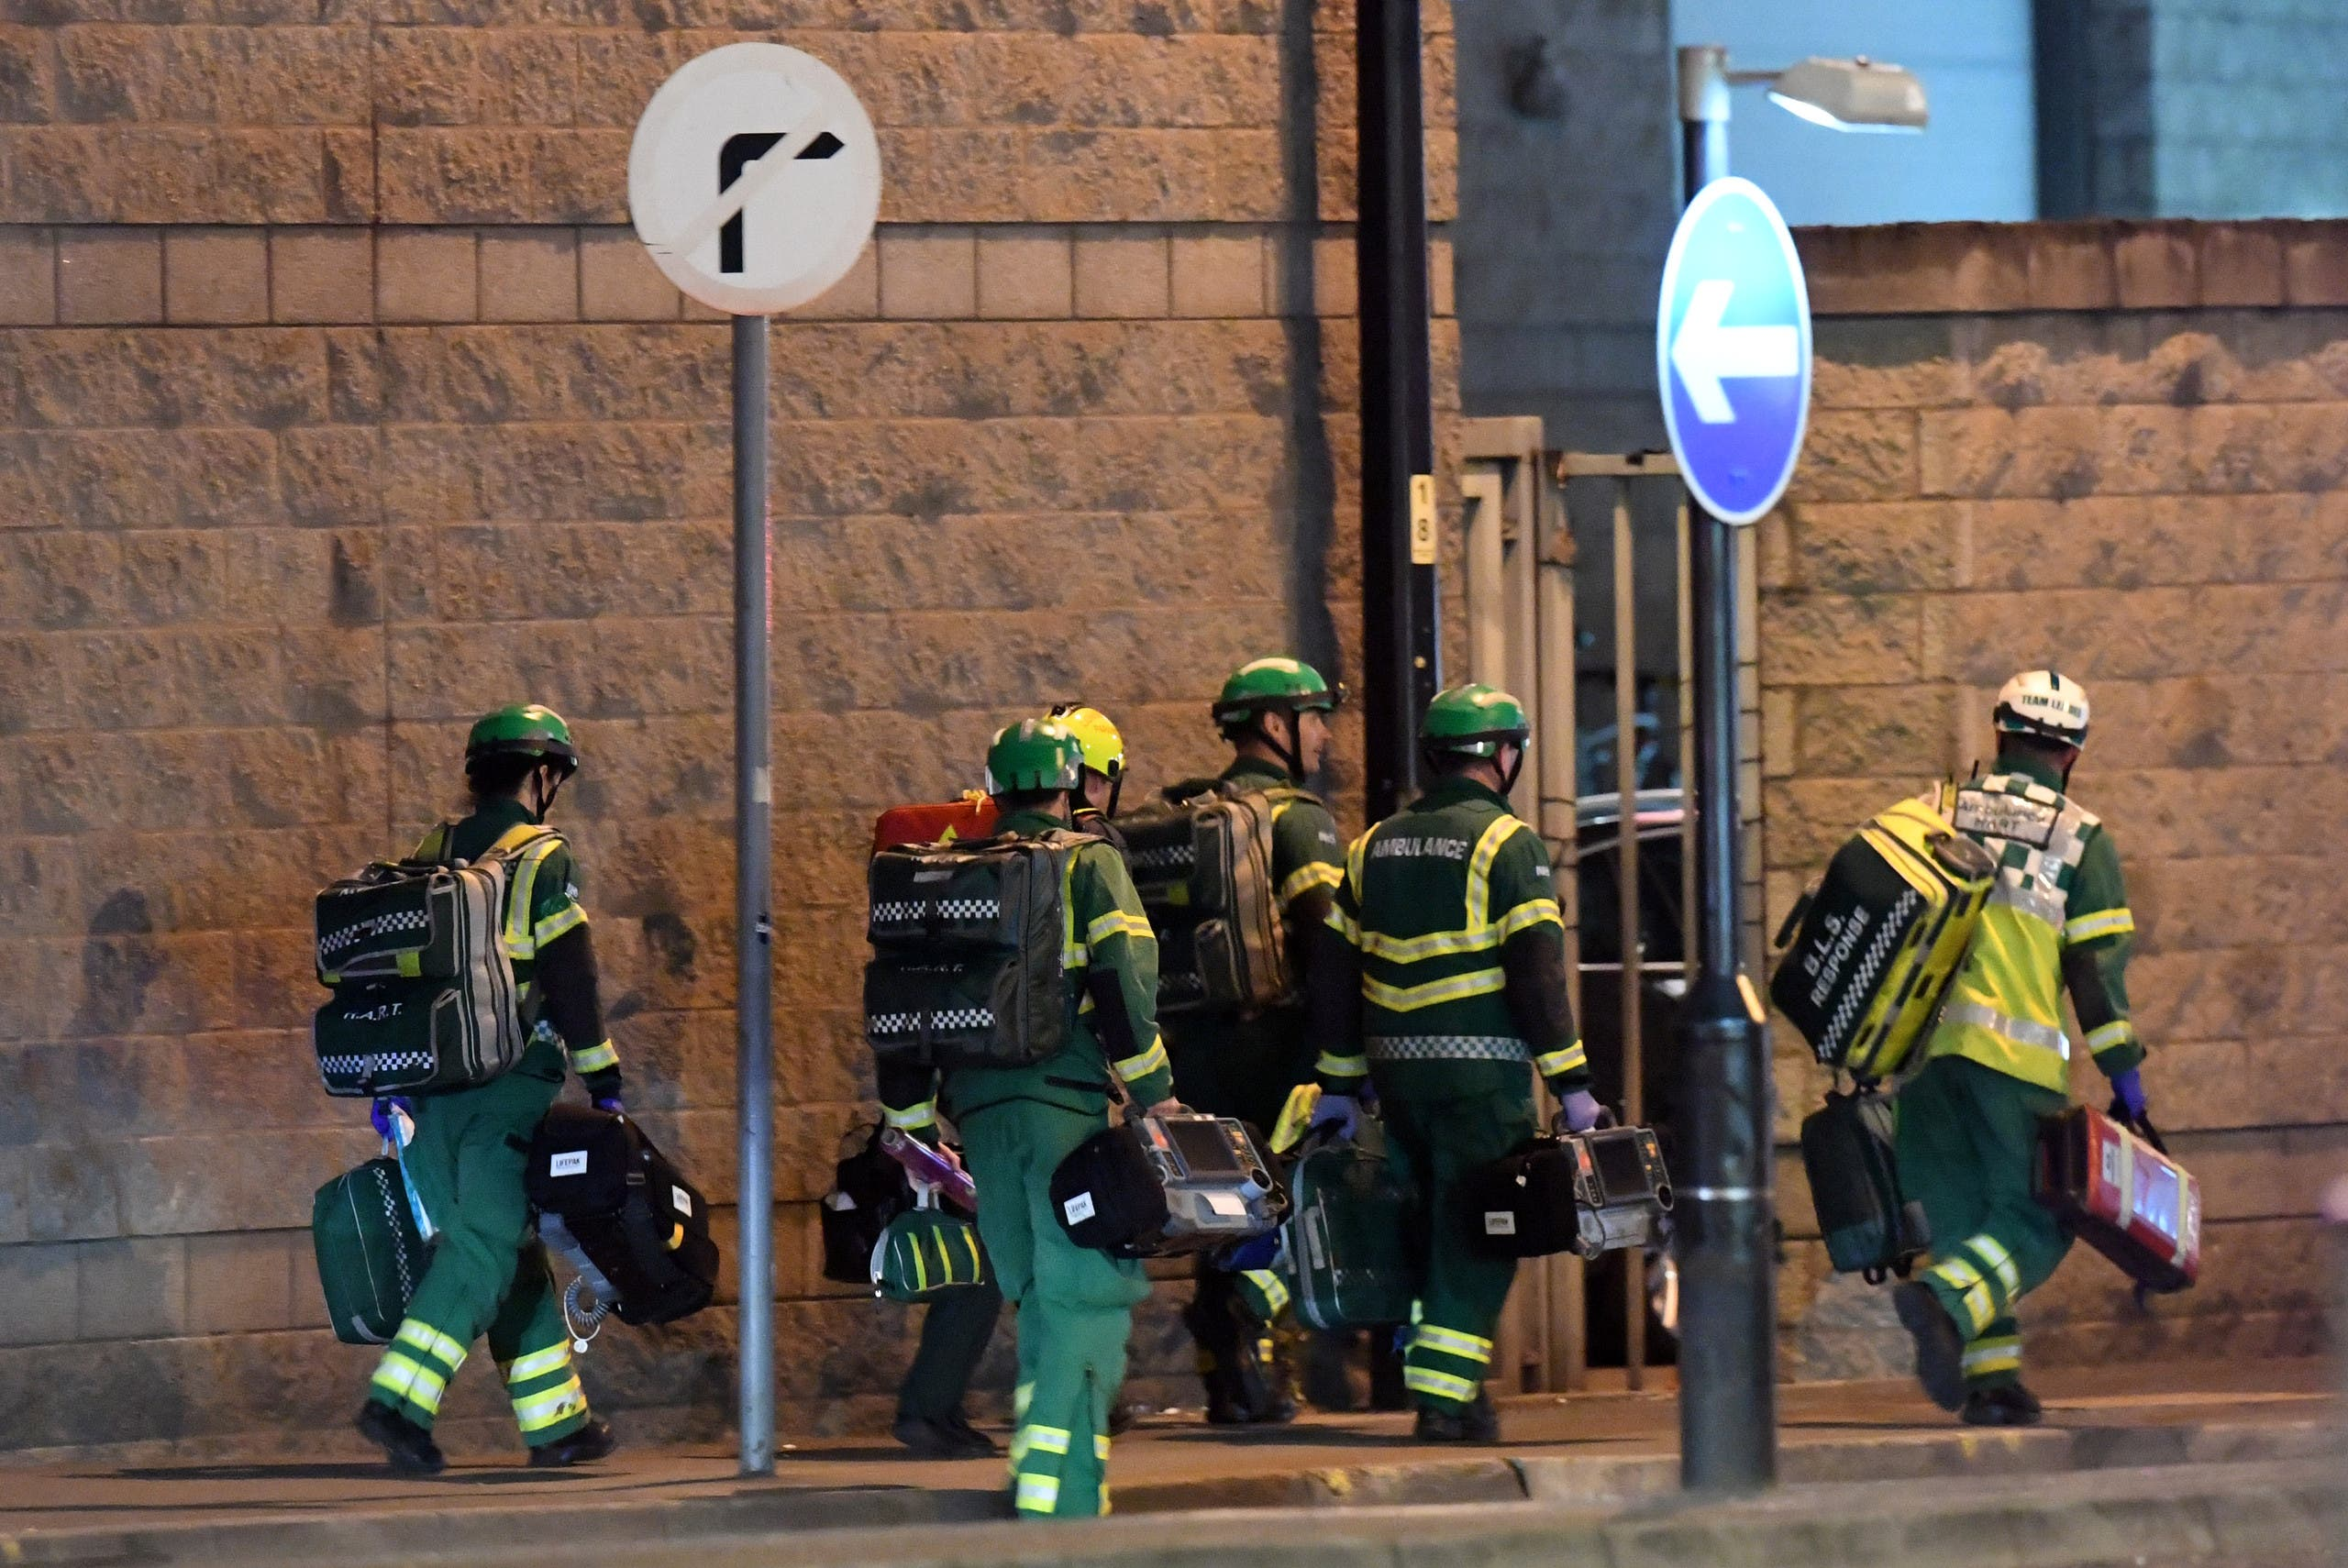 Medics deploy at the scene of a reported explosion during a concert in Manchester, England on May 23, 2017. (AFP)